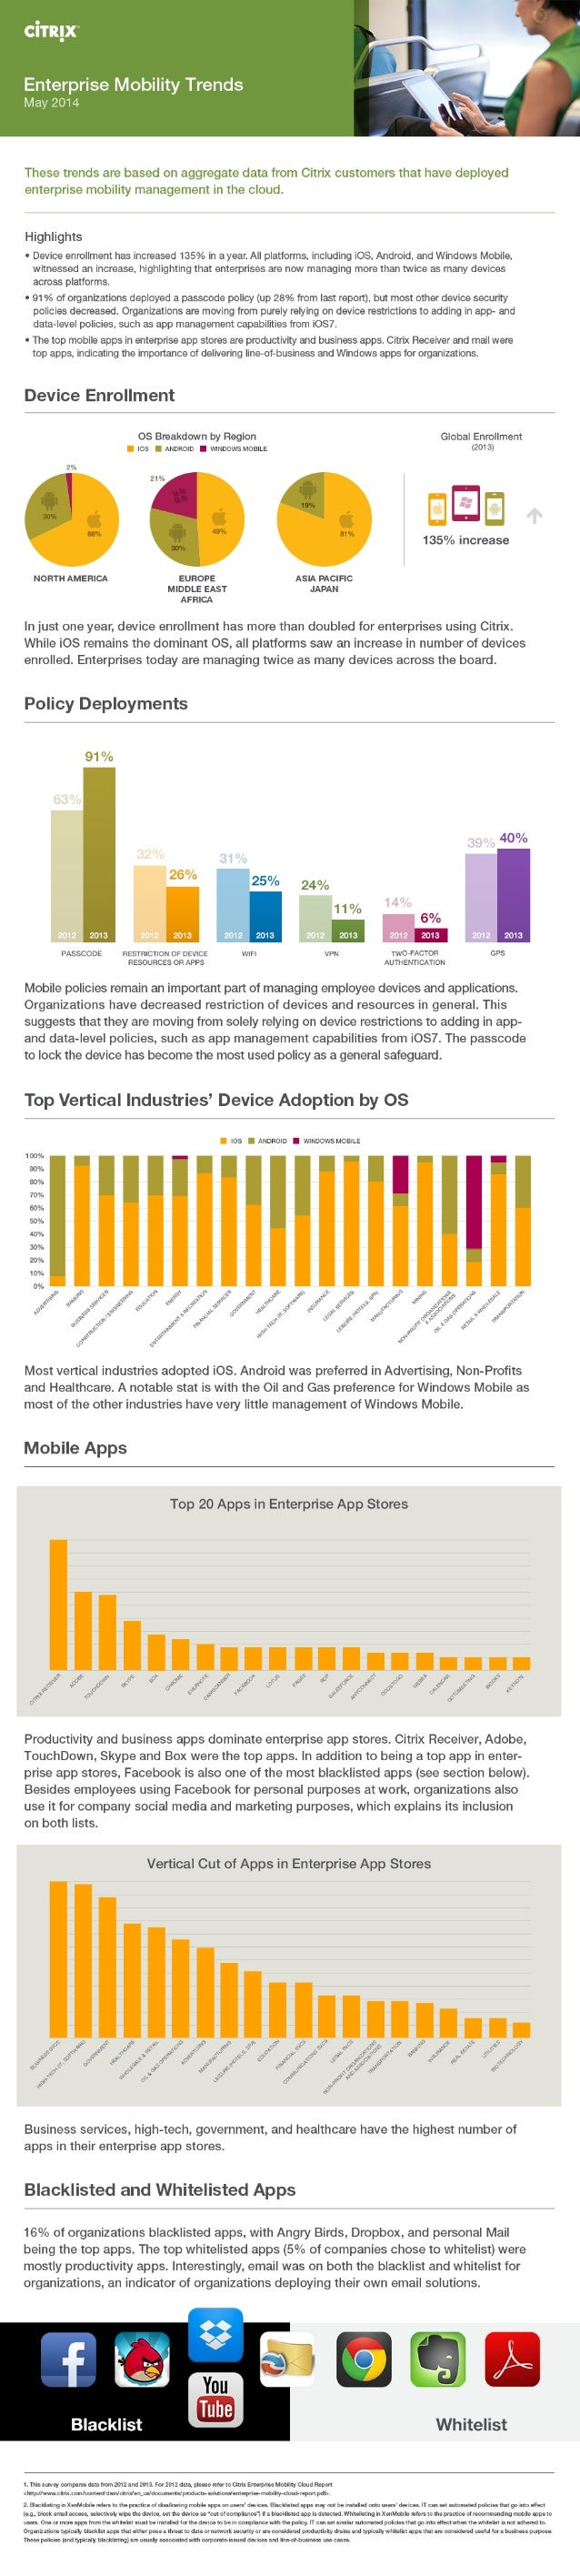 Infographic: Enterprise Mobility Trends